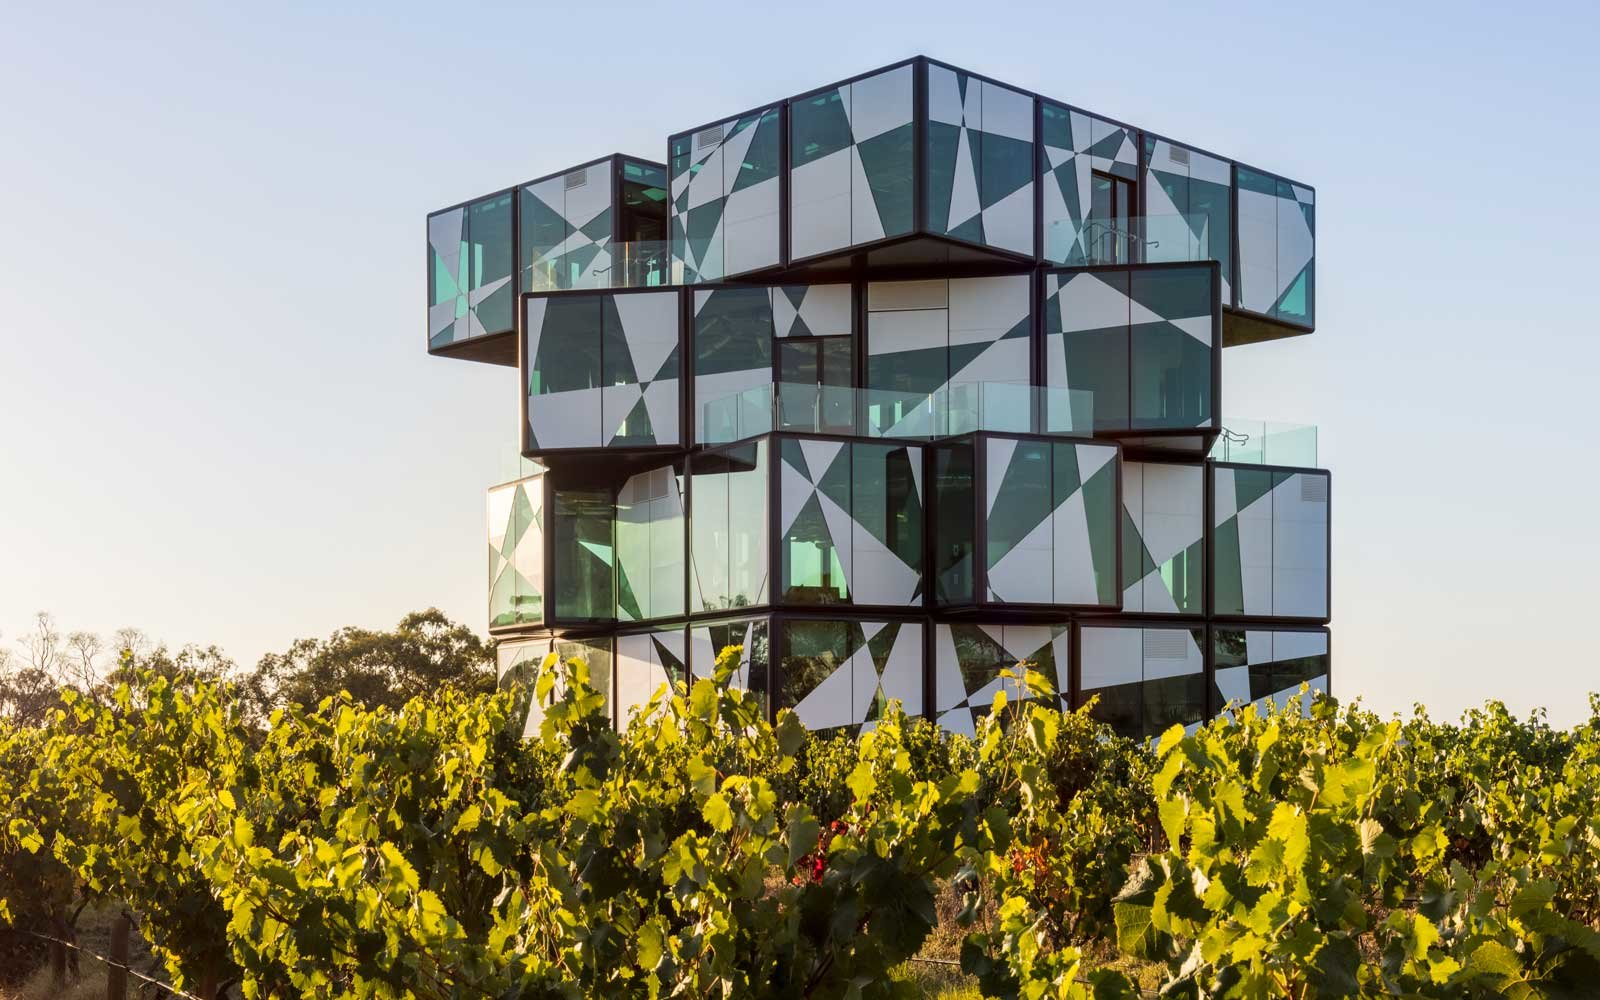 D'arenburg Winery in McLaren Vale, South Australia